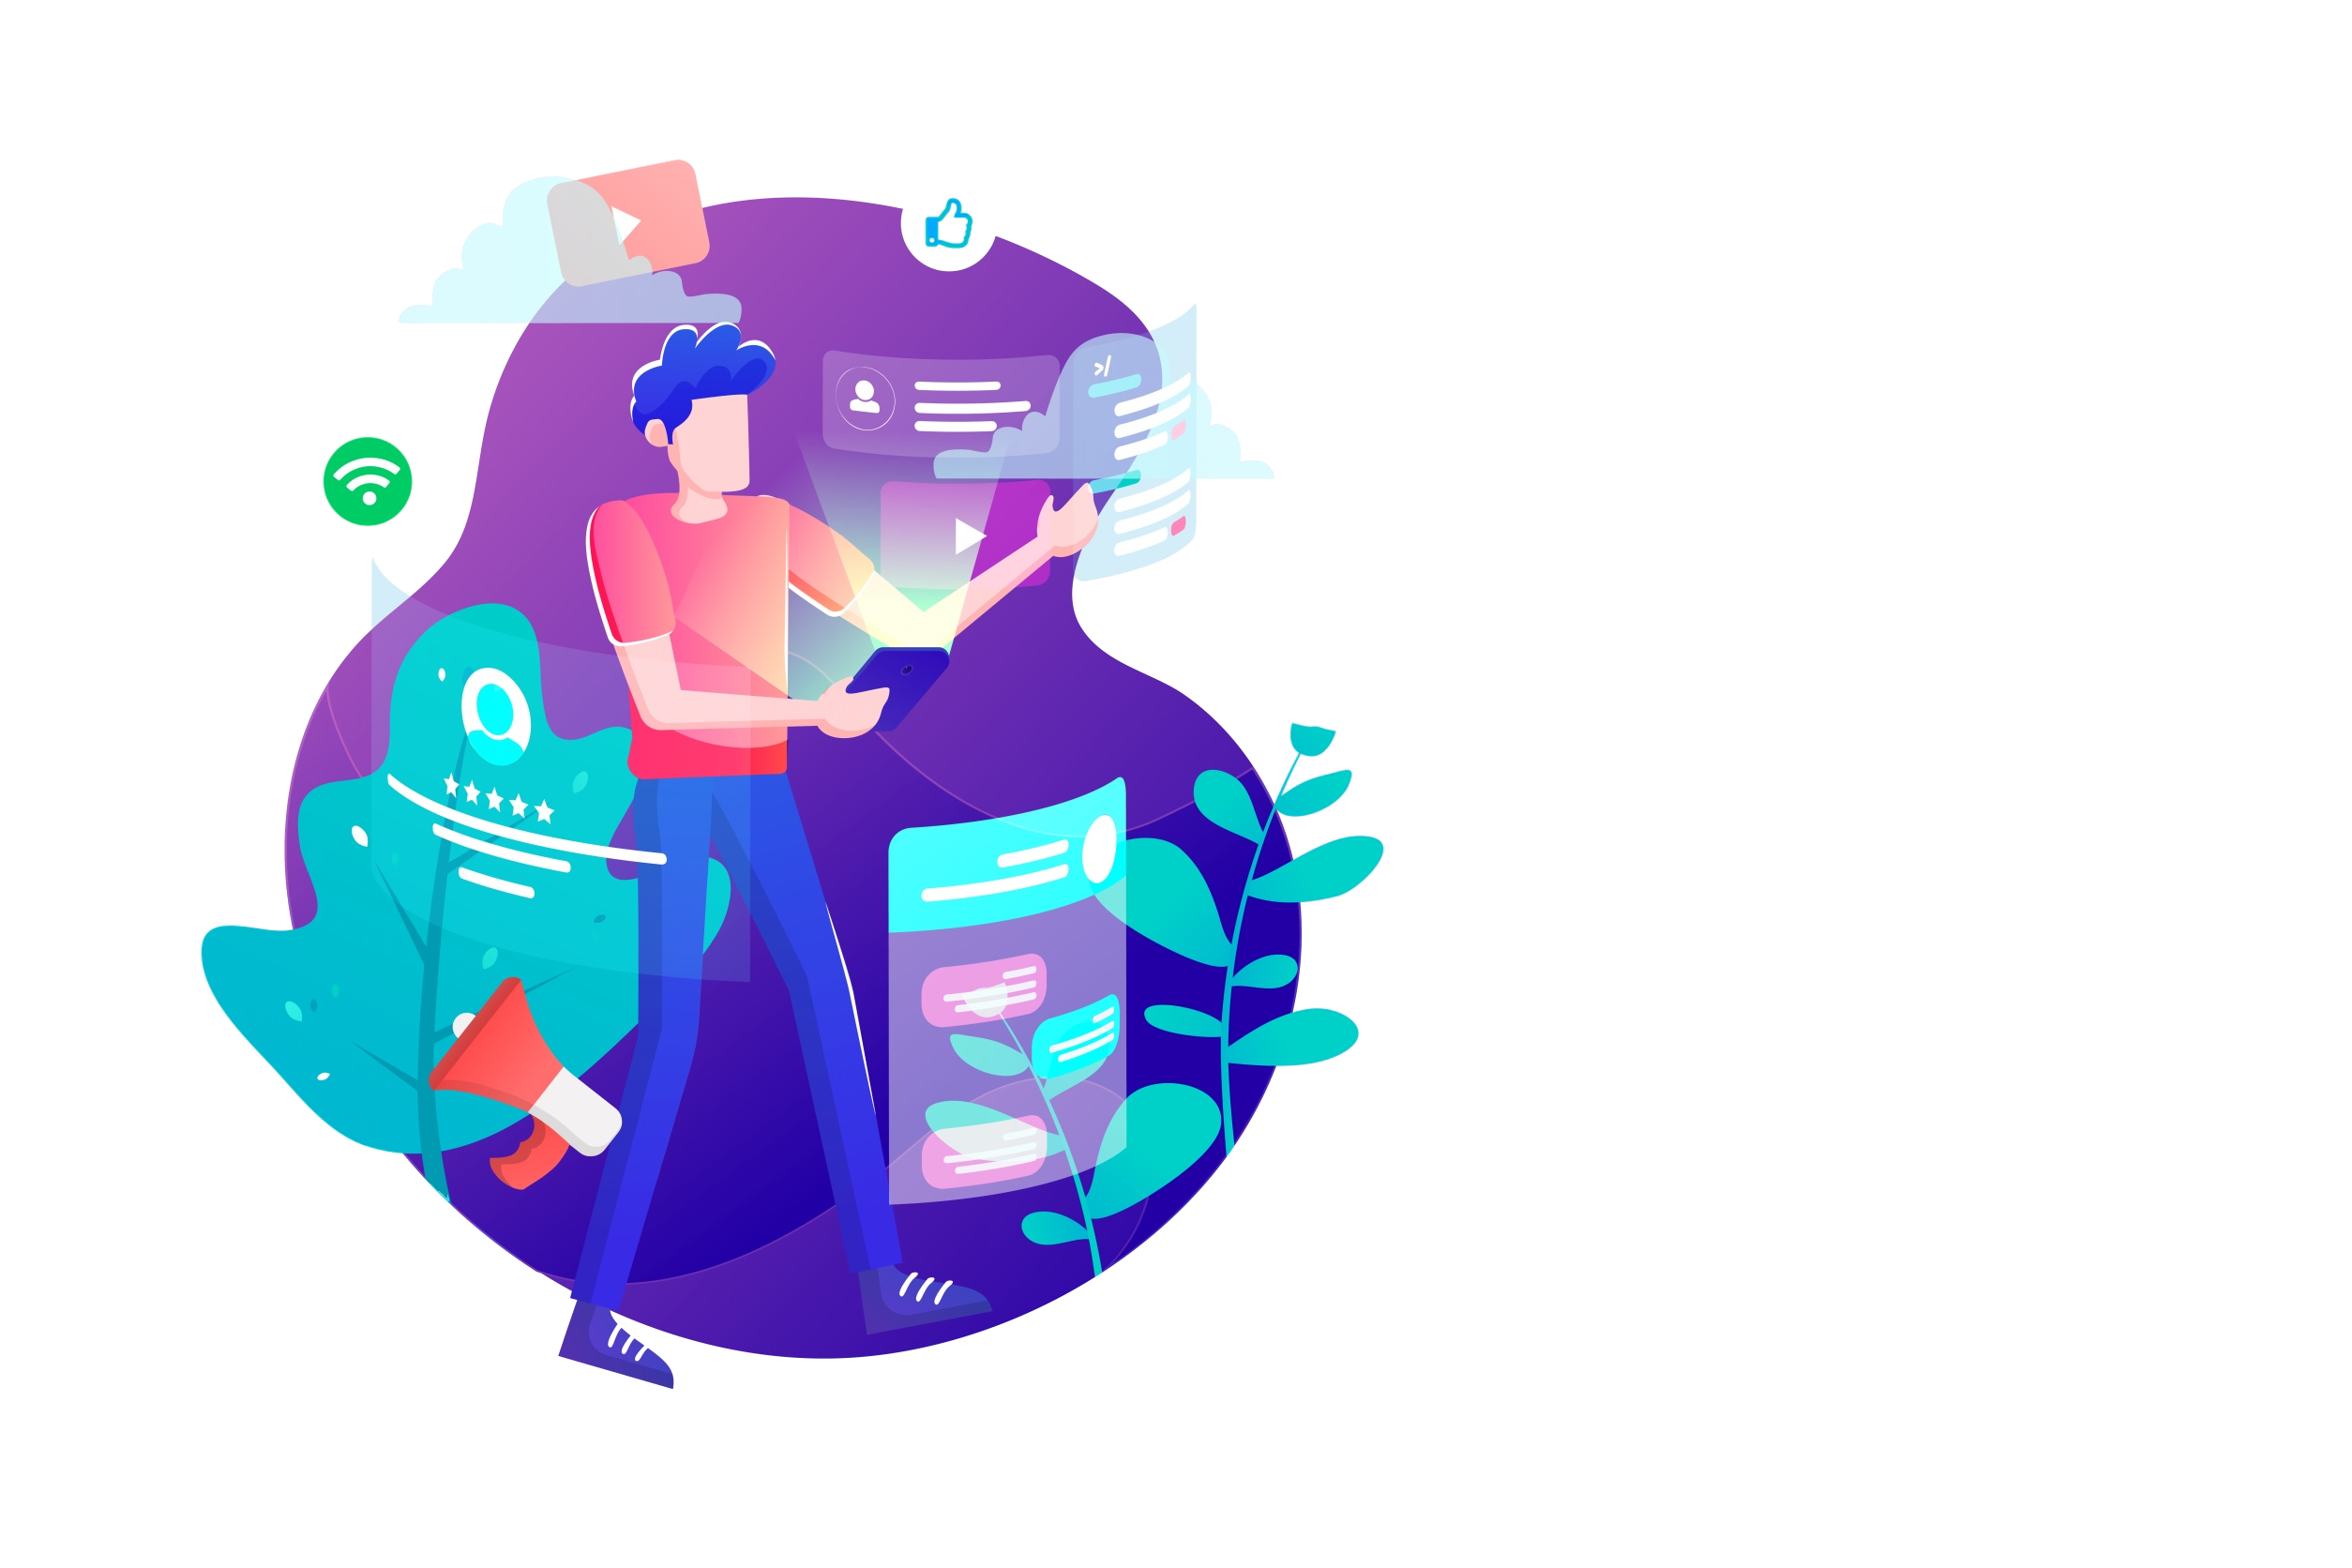 Personalized Marketing Trend in 2020 - Microswift